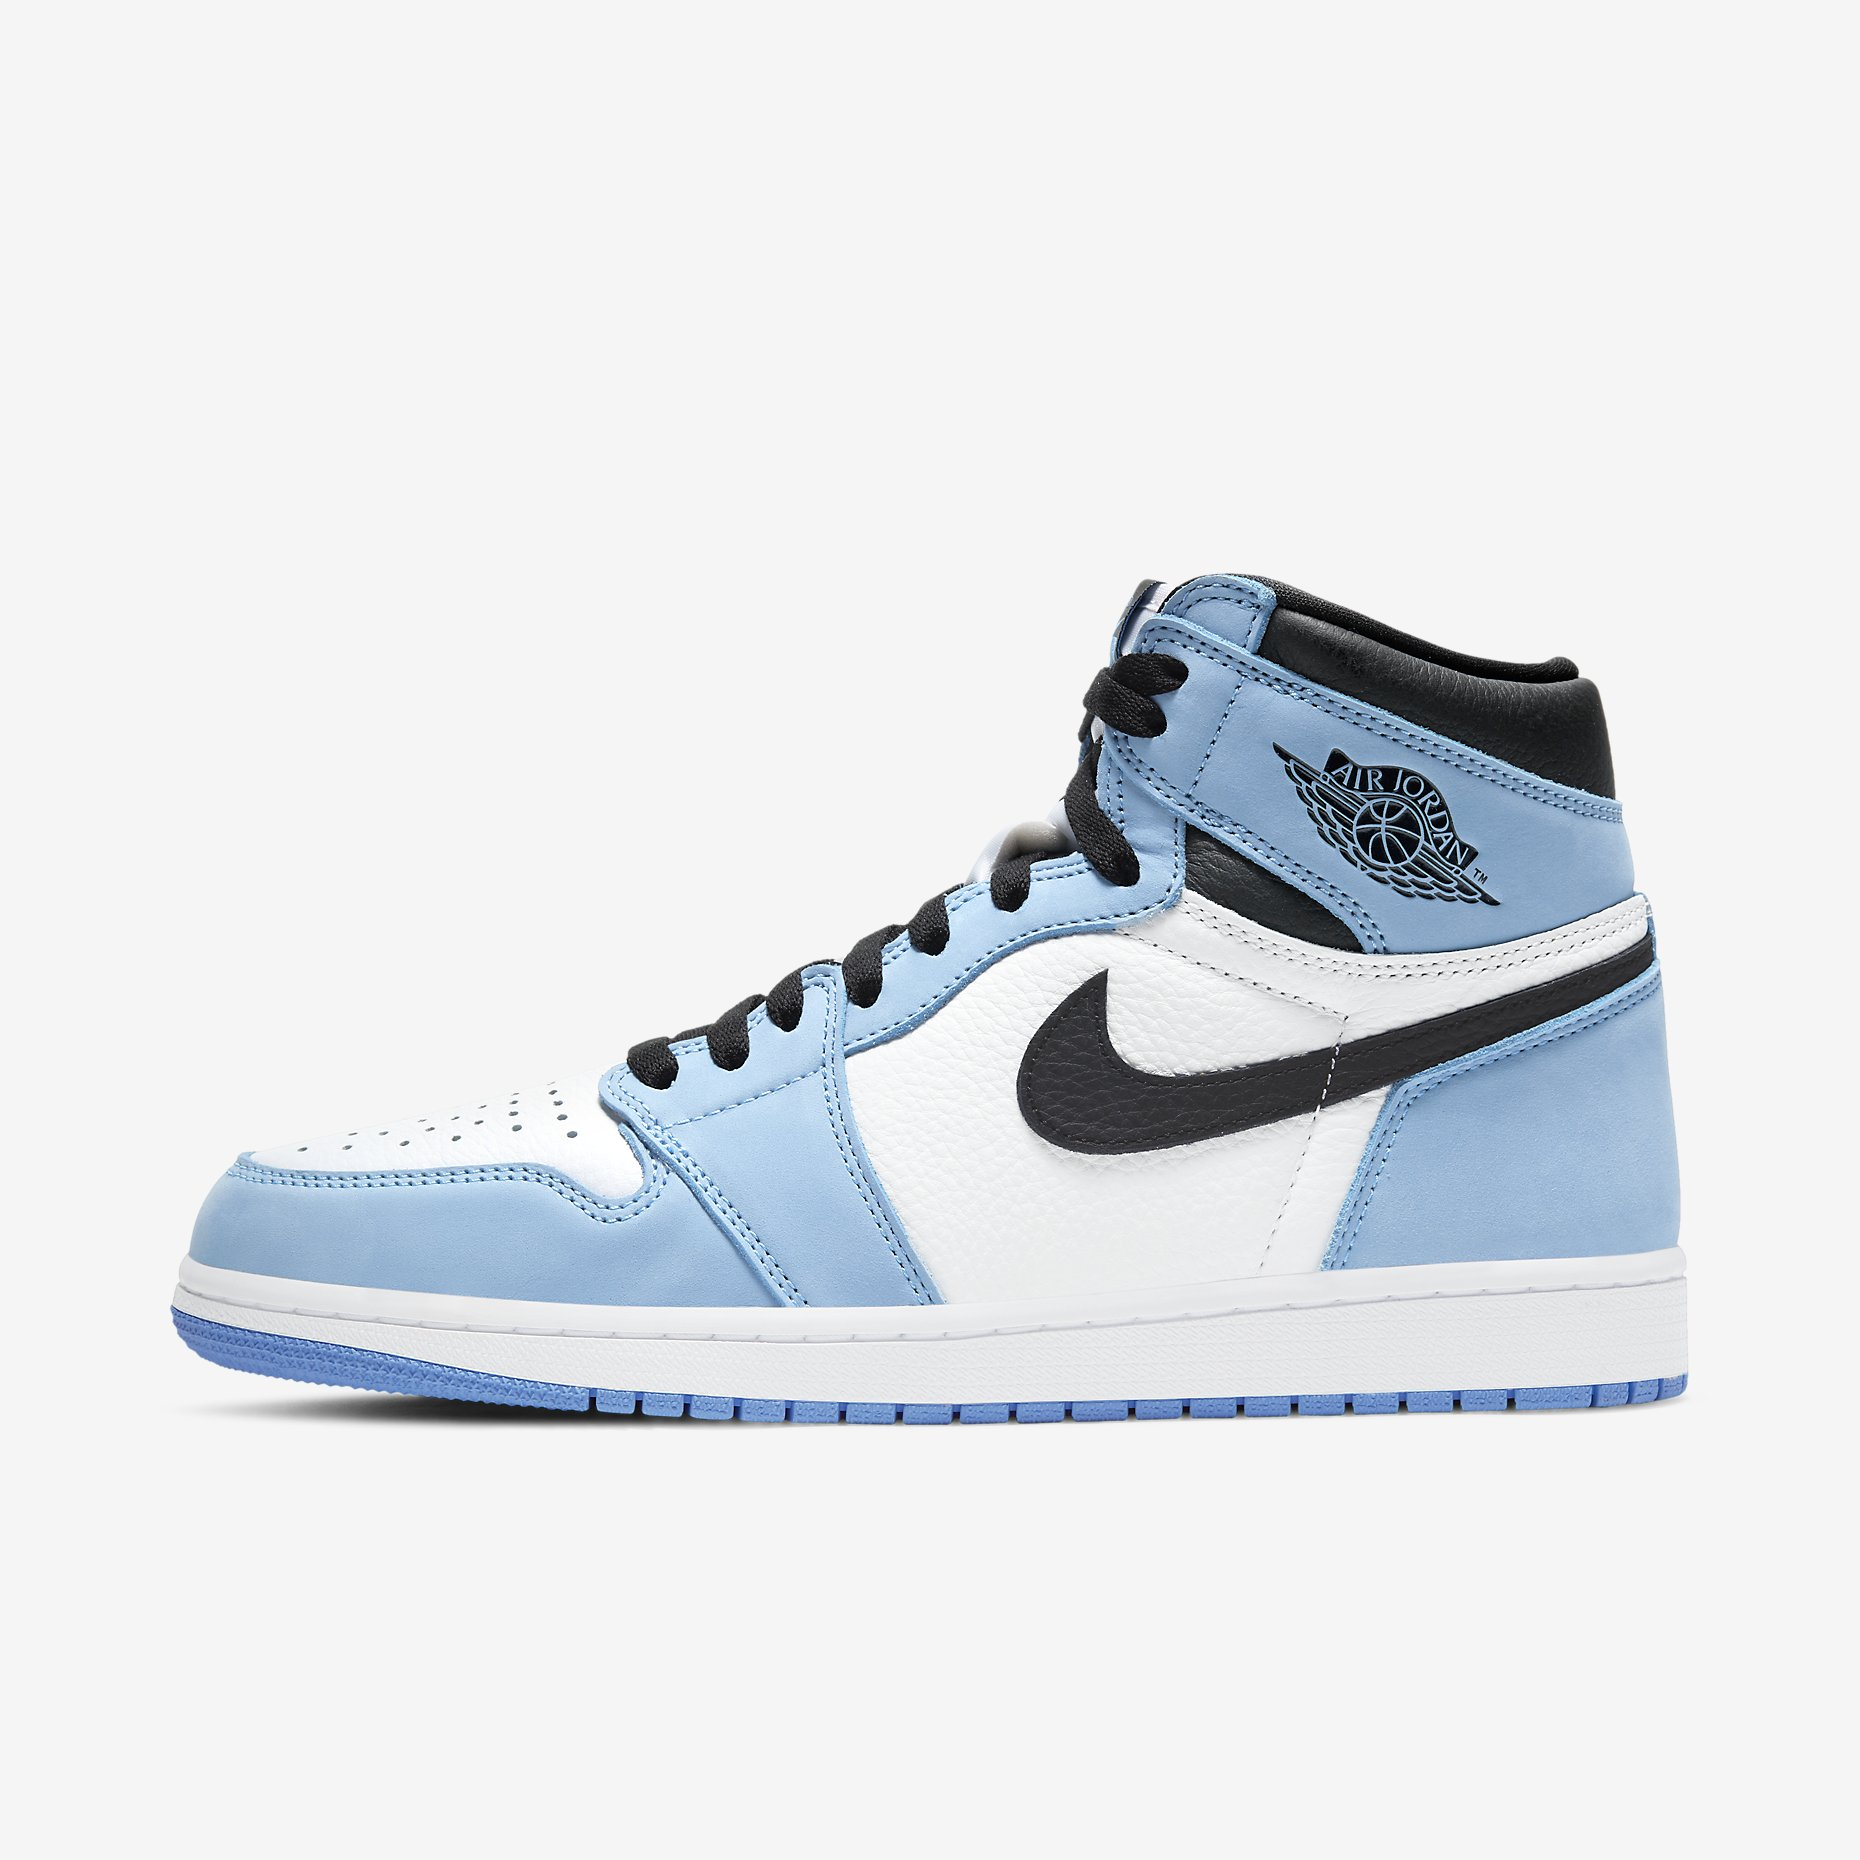 Air Jordan 1 Retro High OG 'University Blue'}